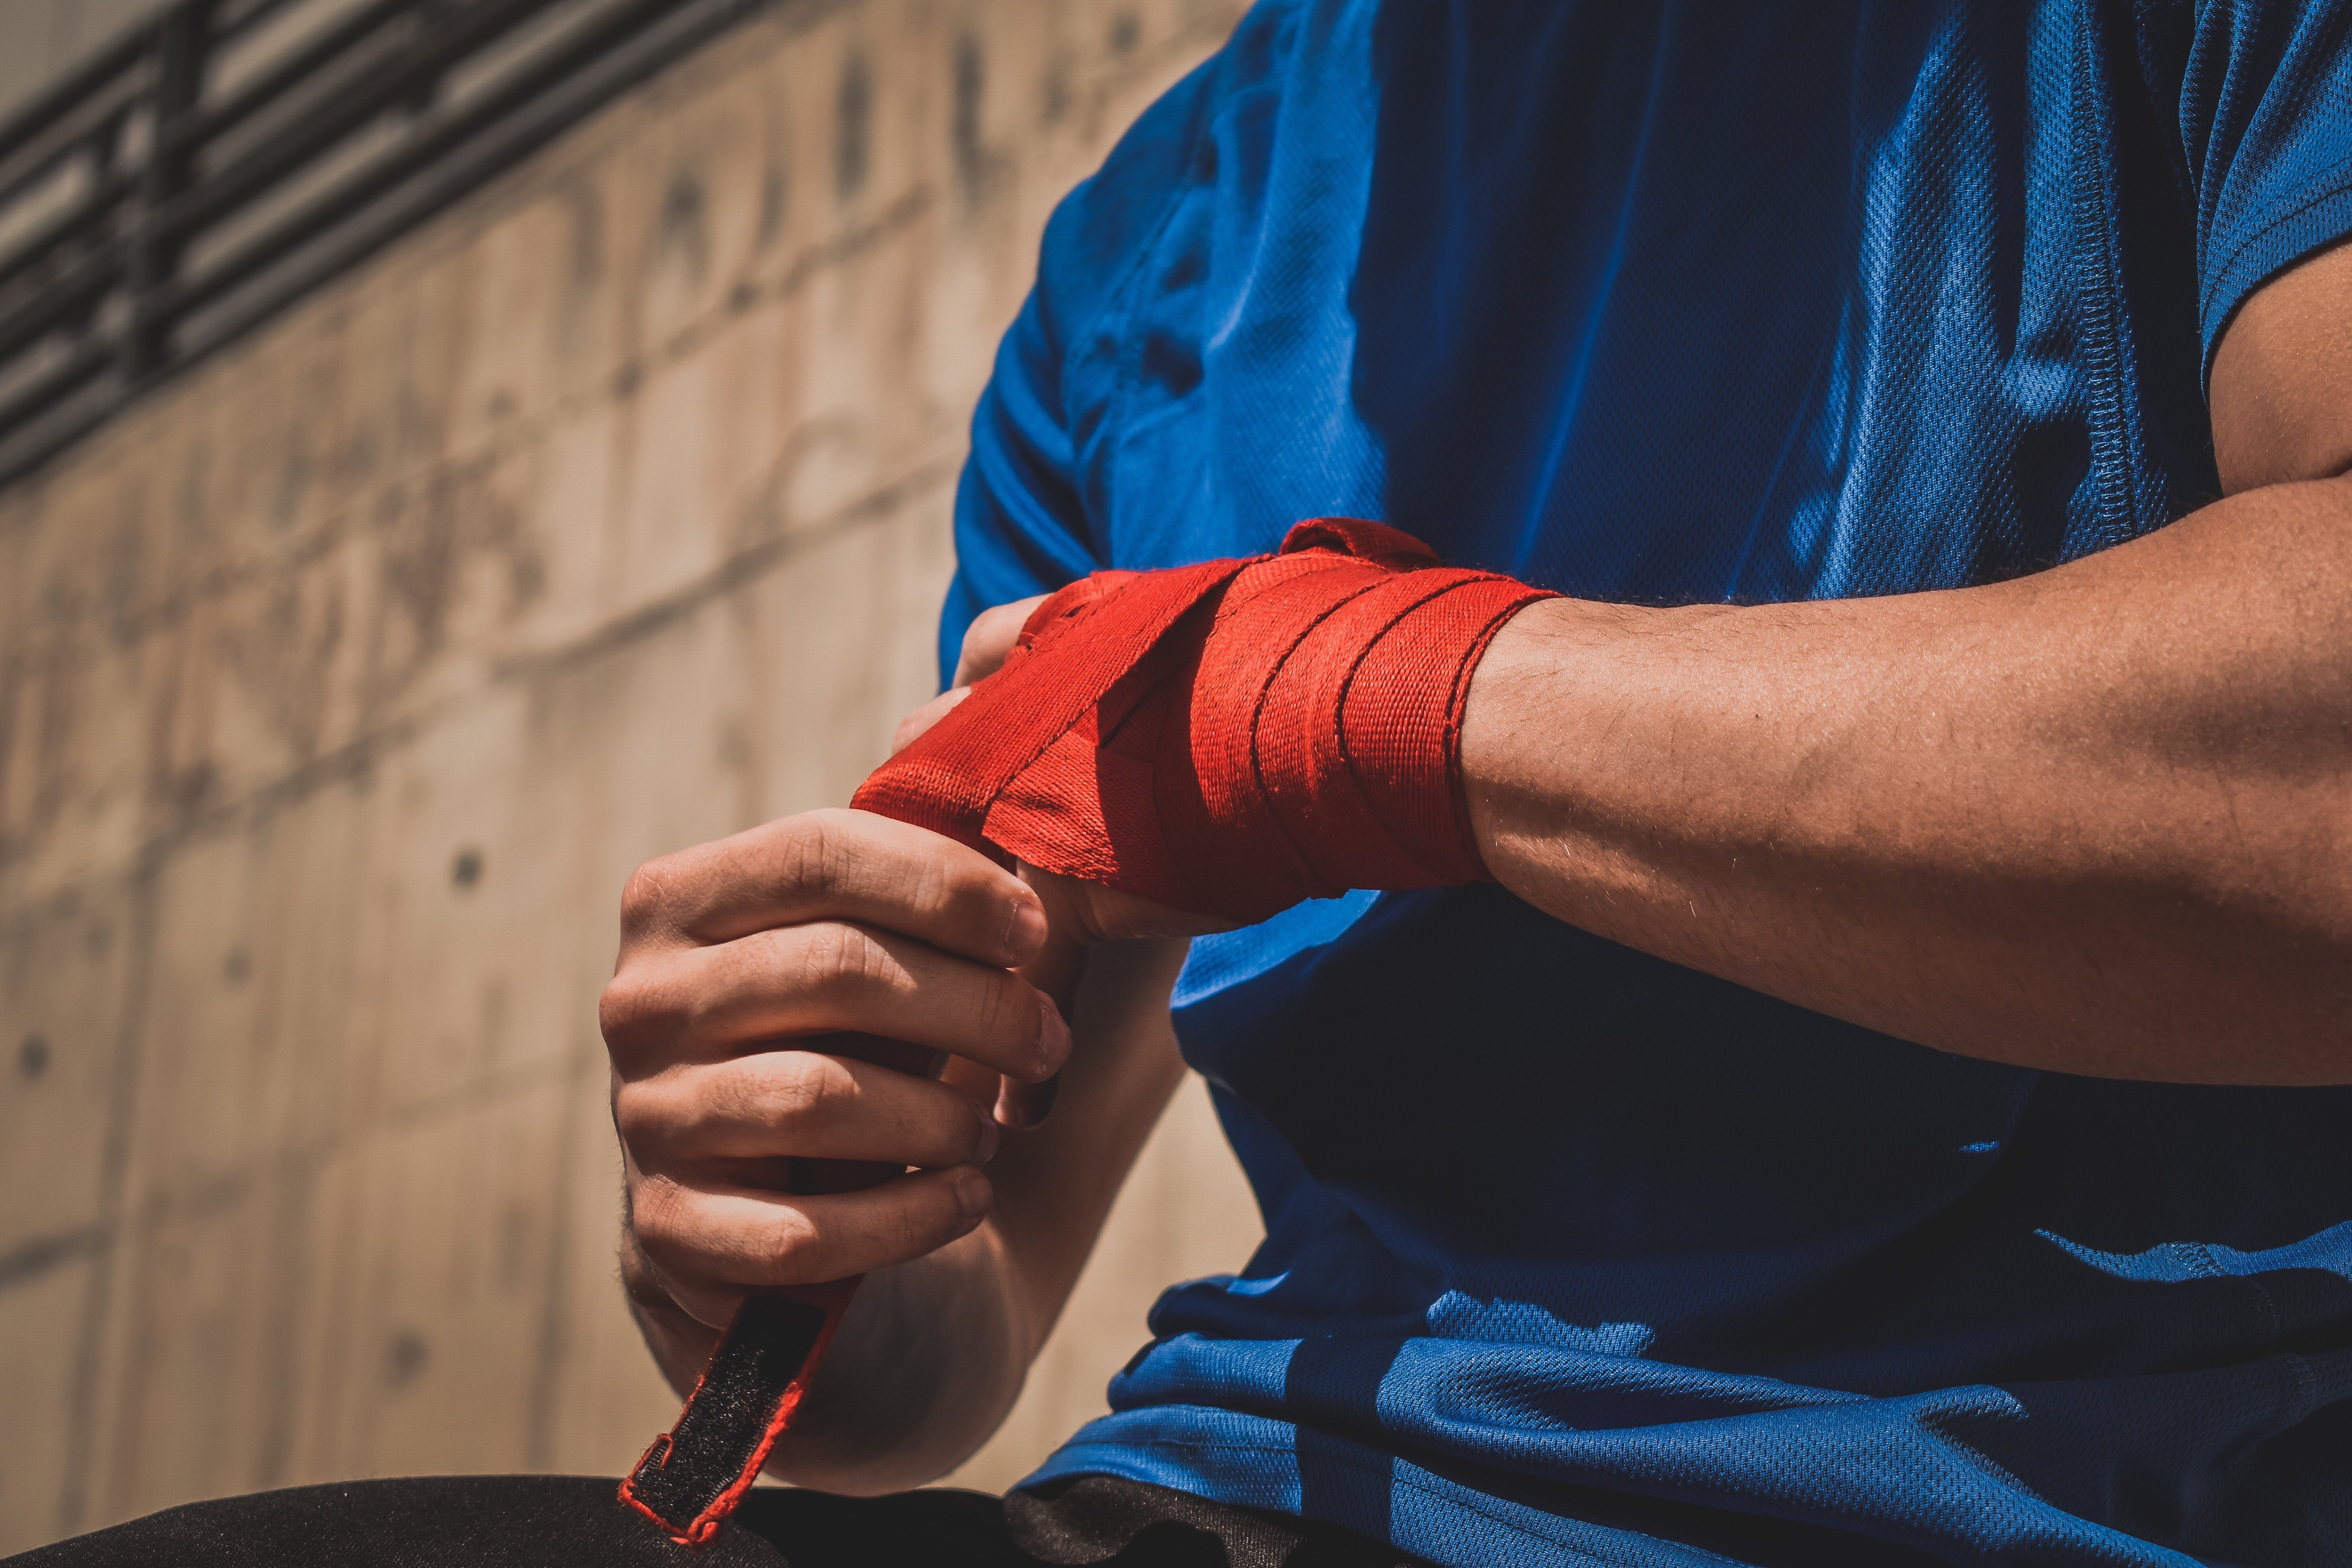 Man wearing a blue T-shirt and fixing his boxing hand wrap  | Source: Unsplash / Payam Tahery